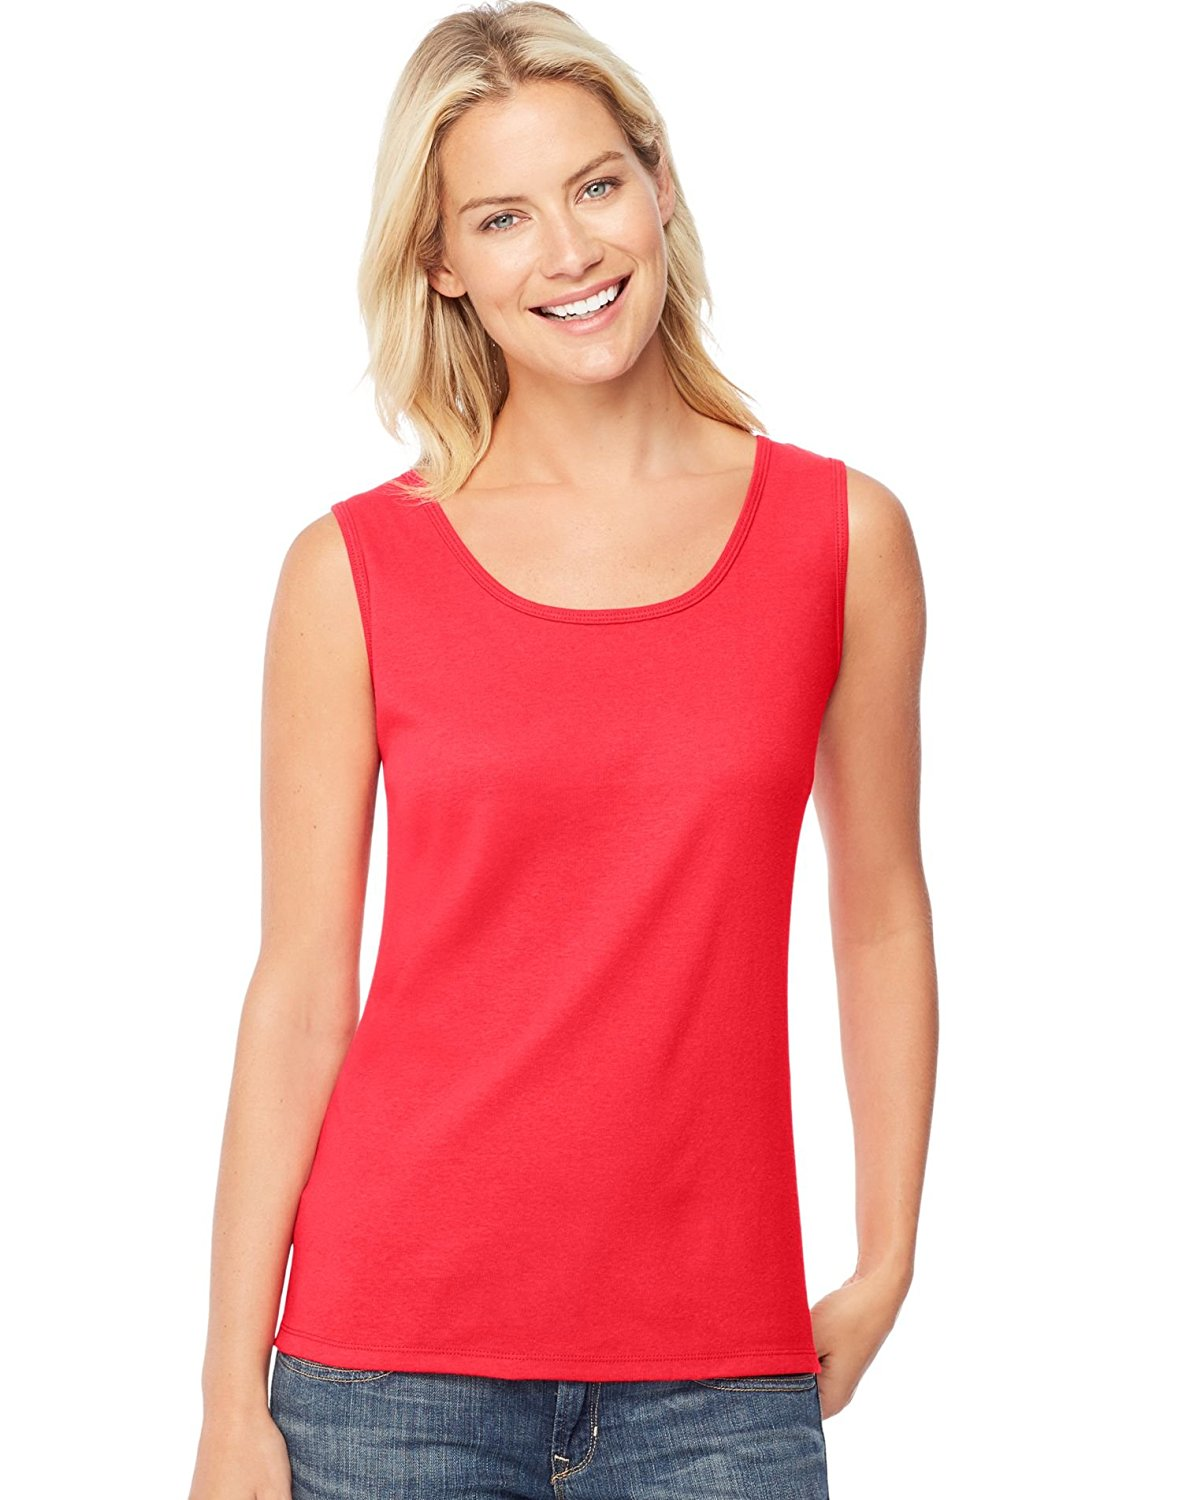 Womens Mini-Ribbed Cotton Tank O9341, XL, Red Spark, Super-soft mini-ribbed fabric comes in 100% pure cotton By Hanes